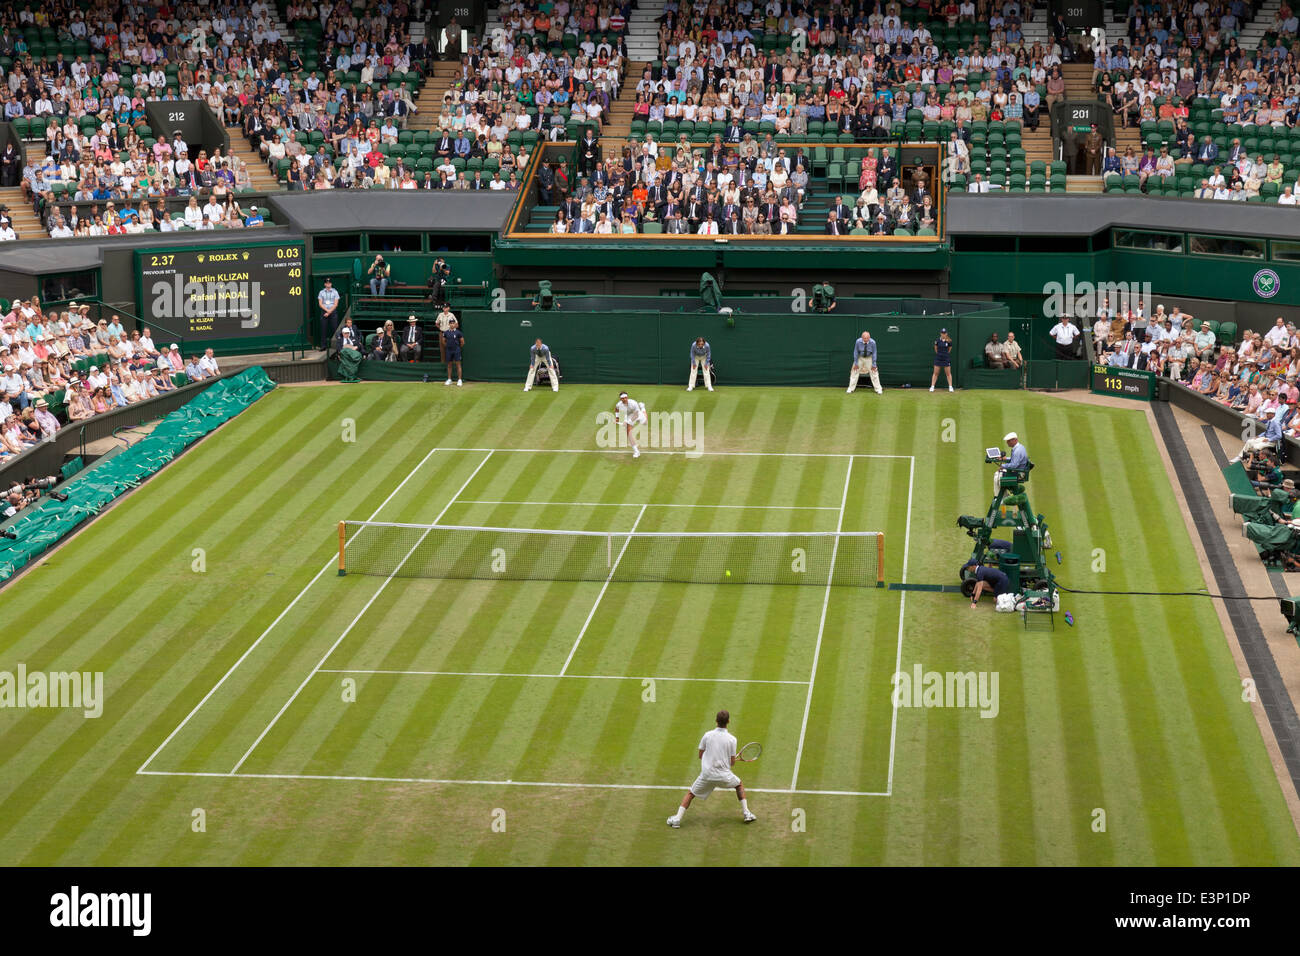 Wimbledon Centre Court Mens Singles, 1st round, 2014 Championships, Wimbledon Lawn Tennis Club, London England UK - Stock Image